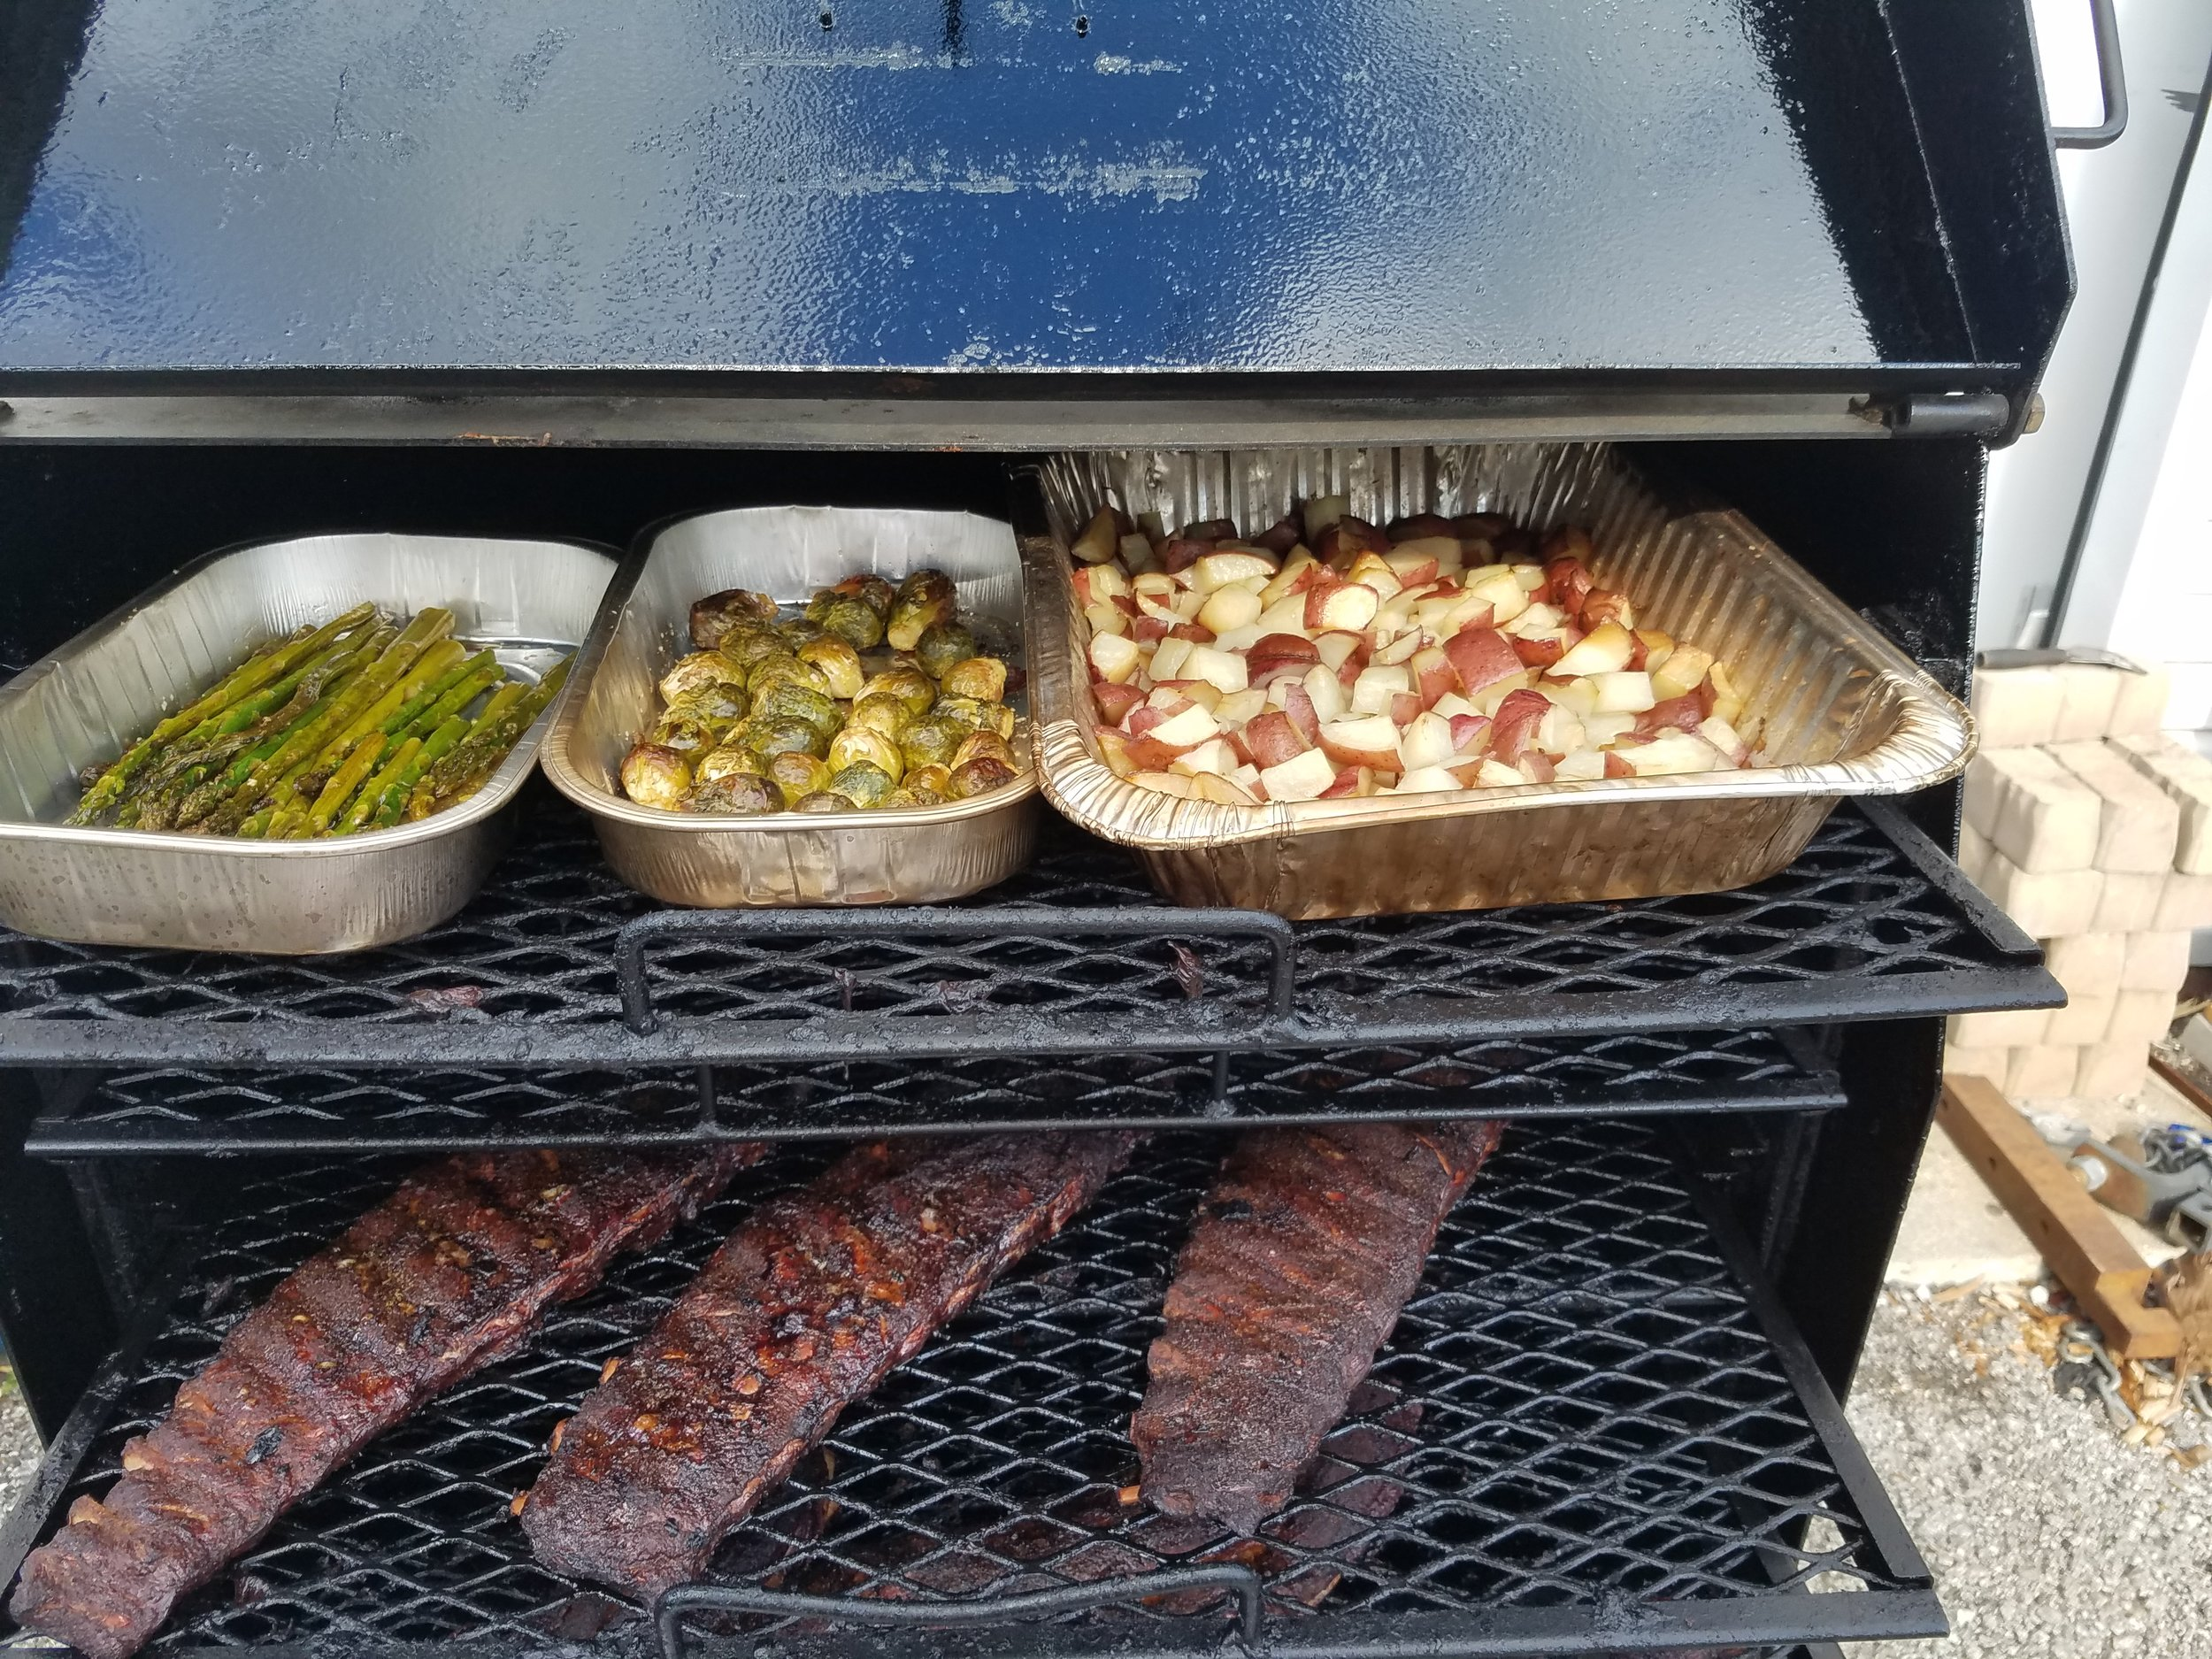 Ribs, Asparagus, Brussel sprouts, Potatoes.jpg